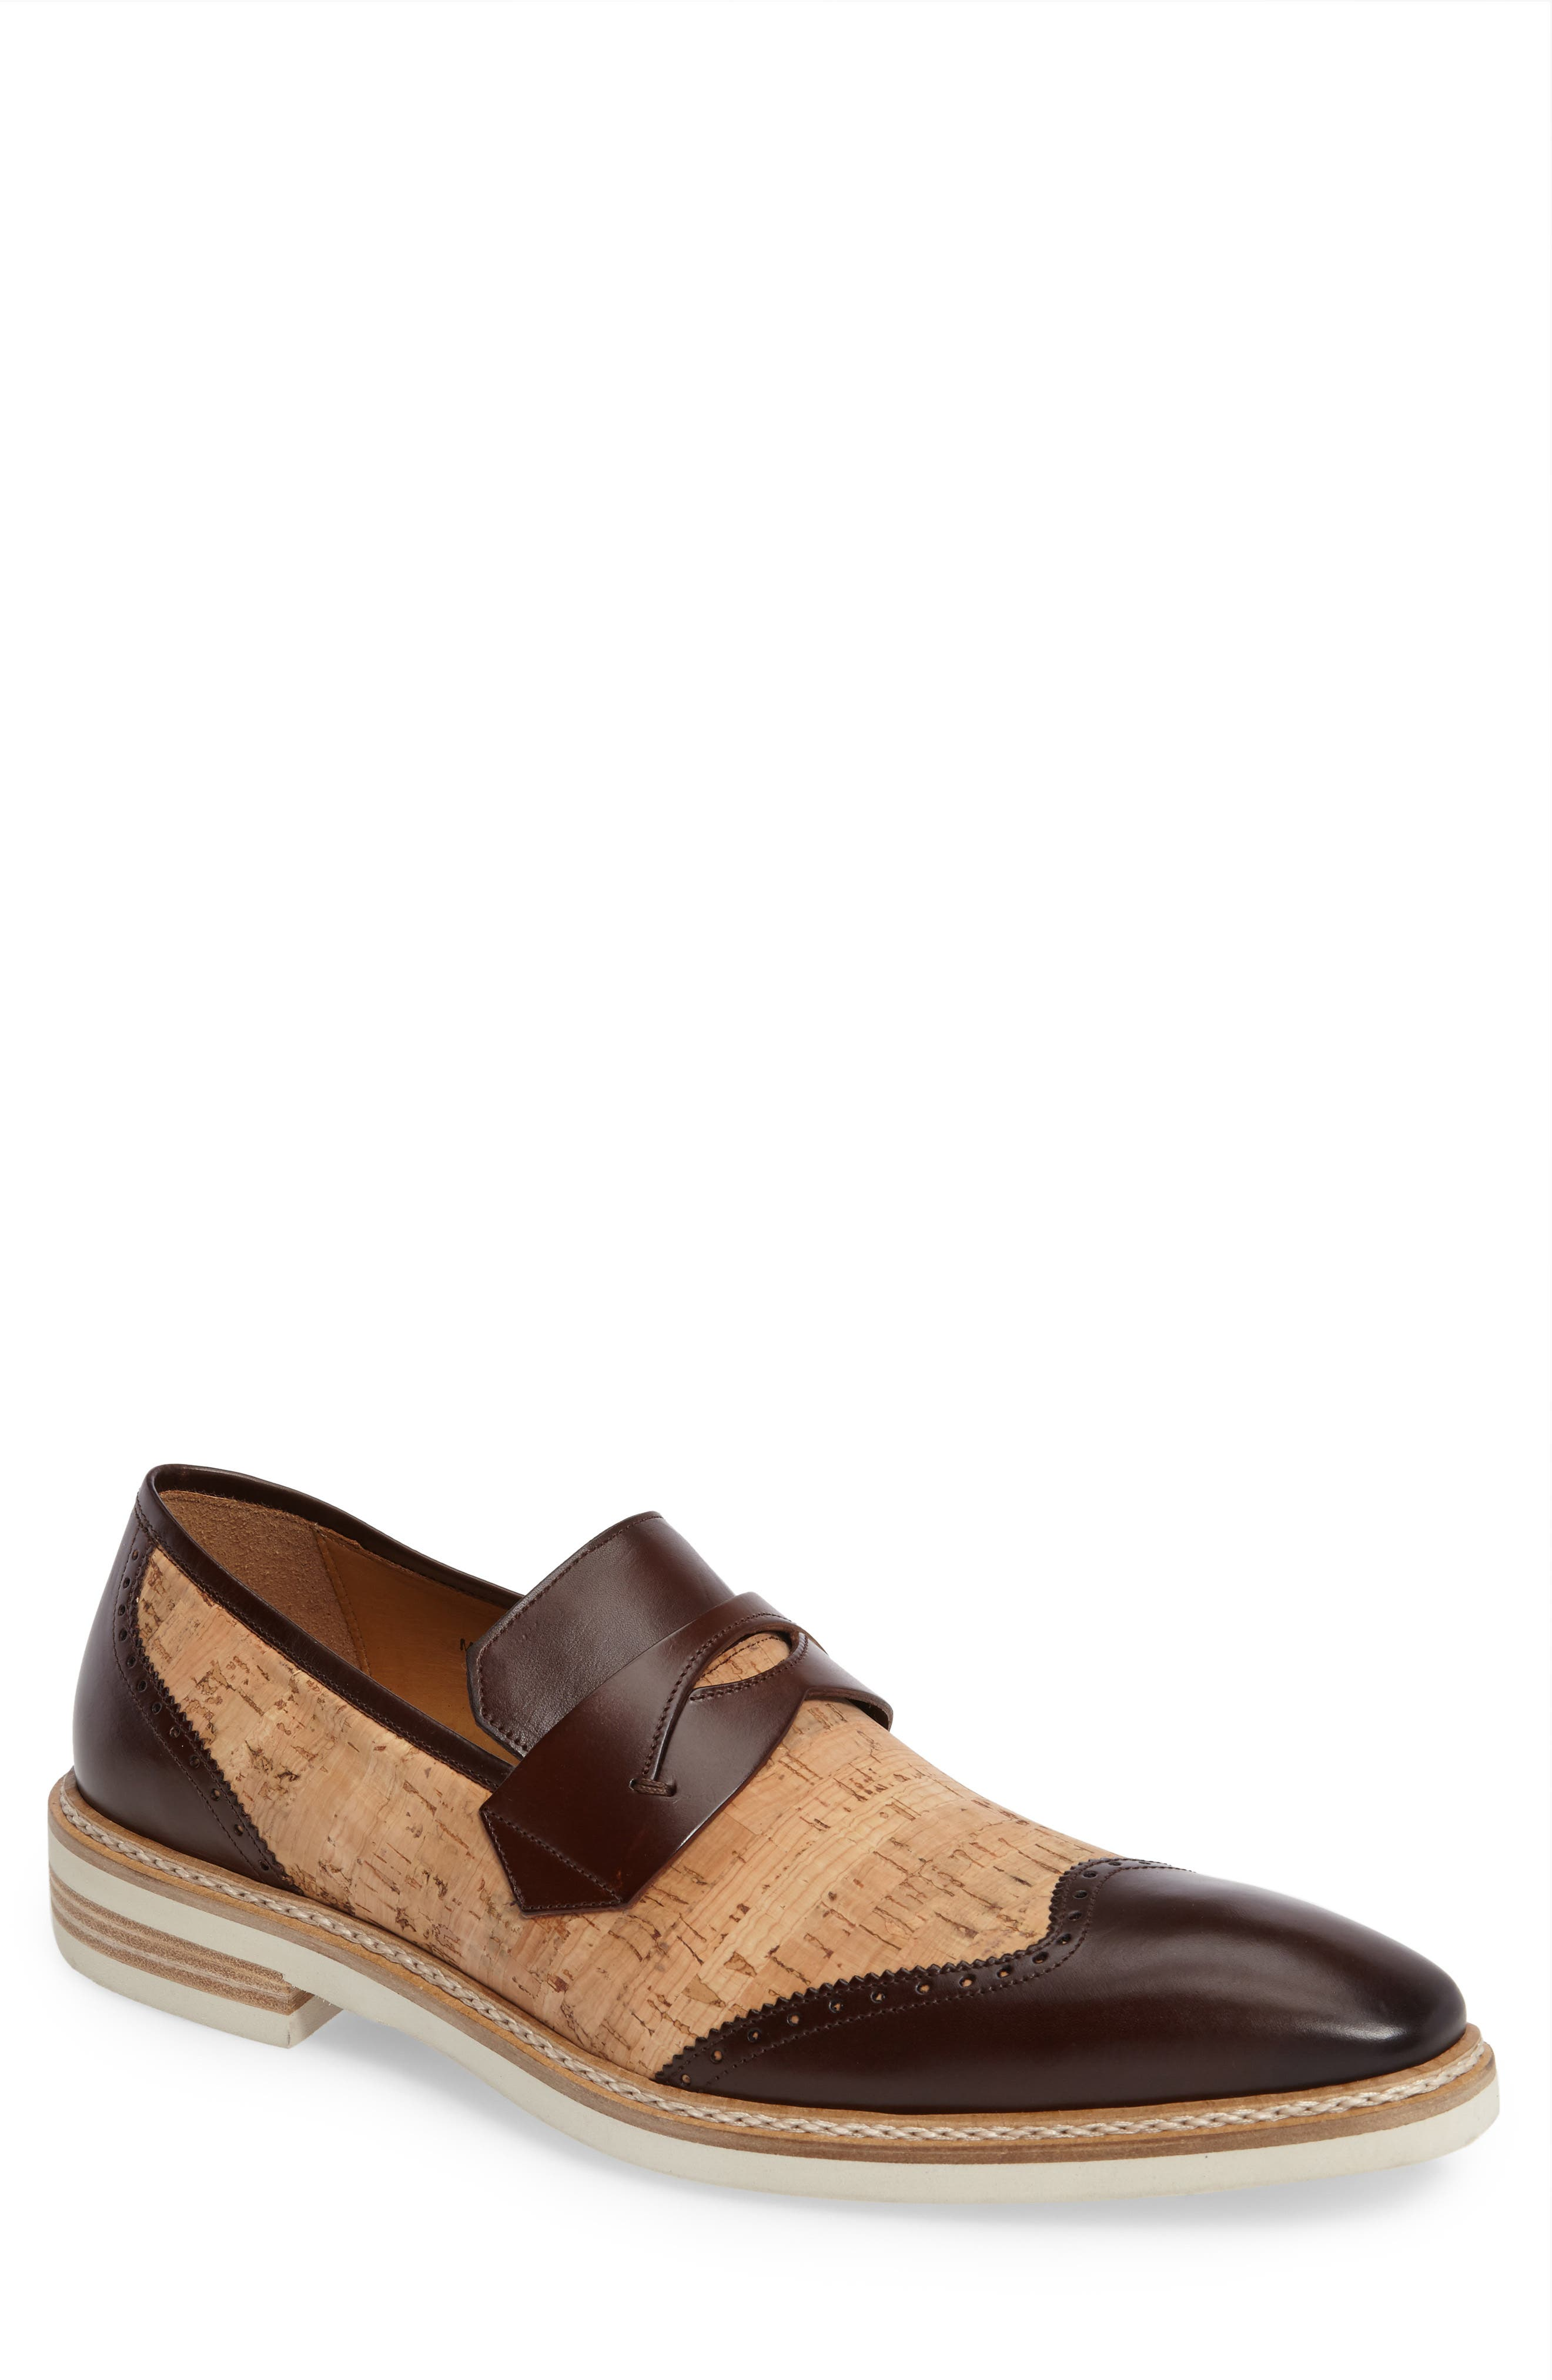 Main Image - Mezlan Redi Venetian Loafer (Men)